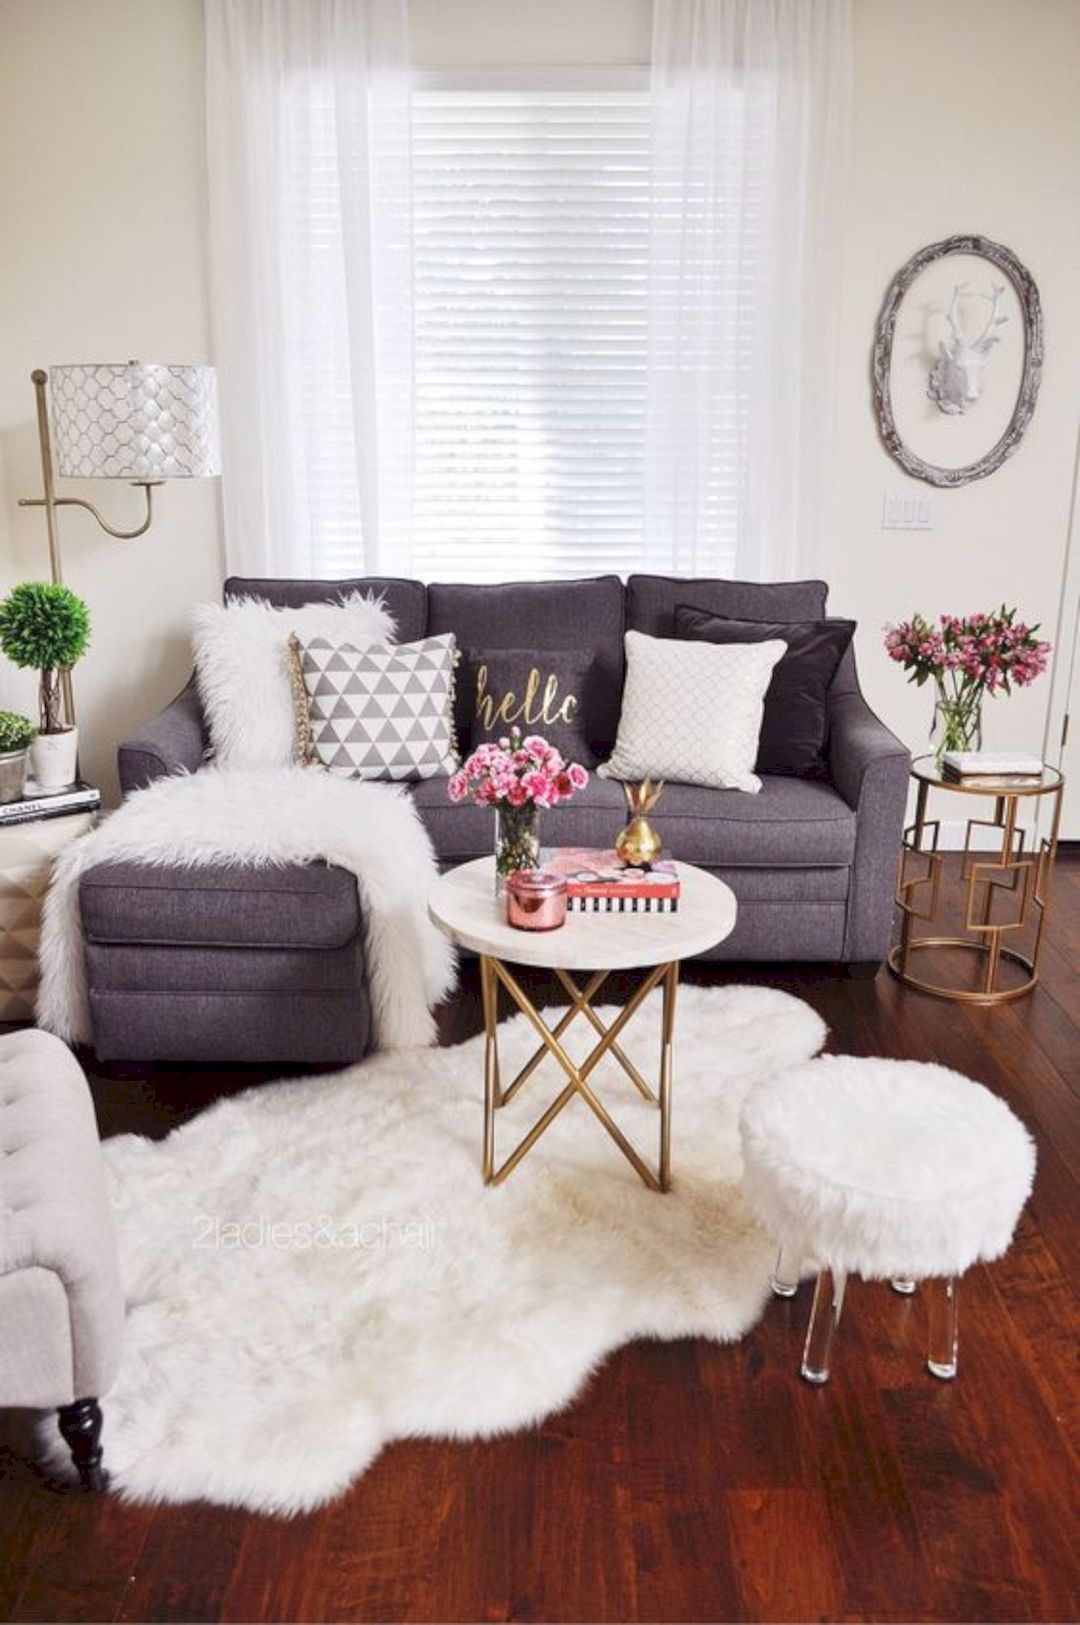 Modern Living Room Design For Small Spaces: 16 Impressive Living Room Decorating Ideas